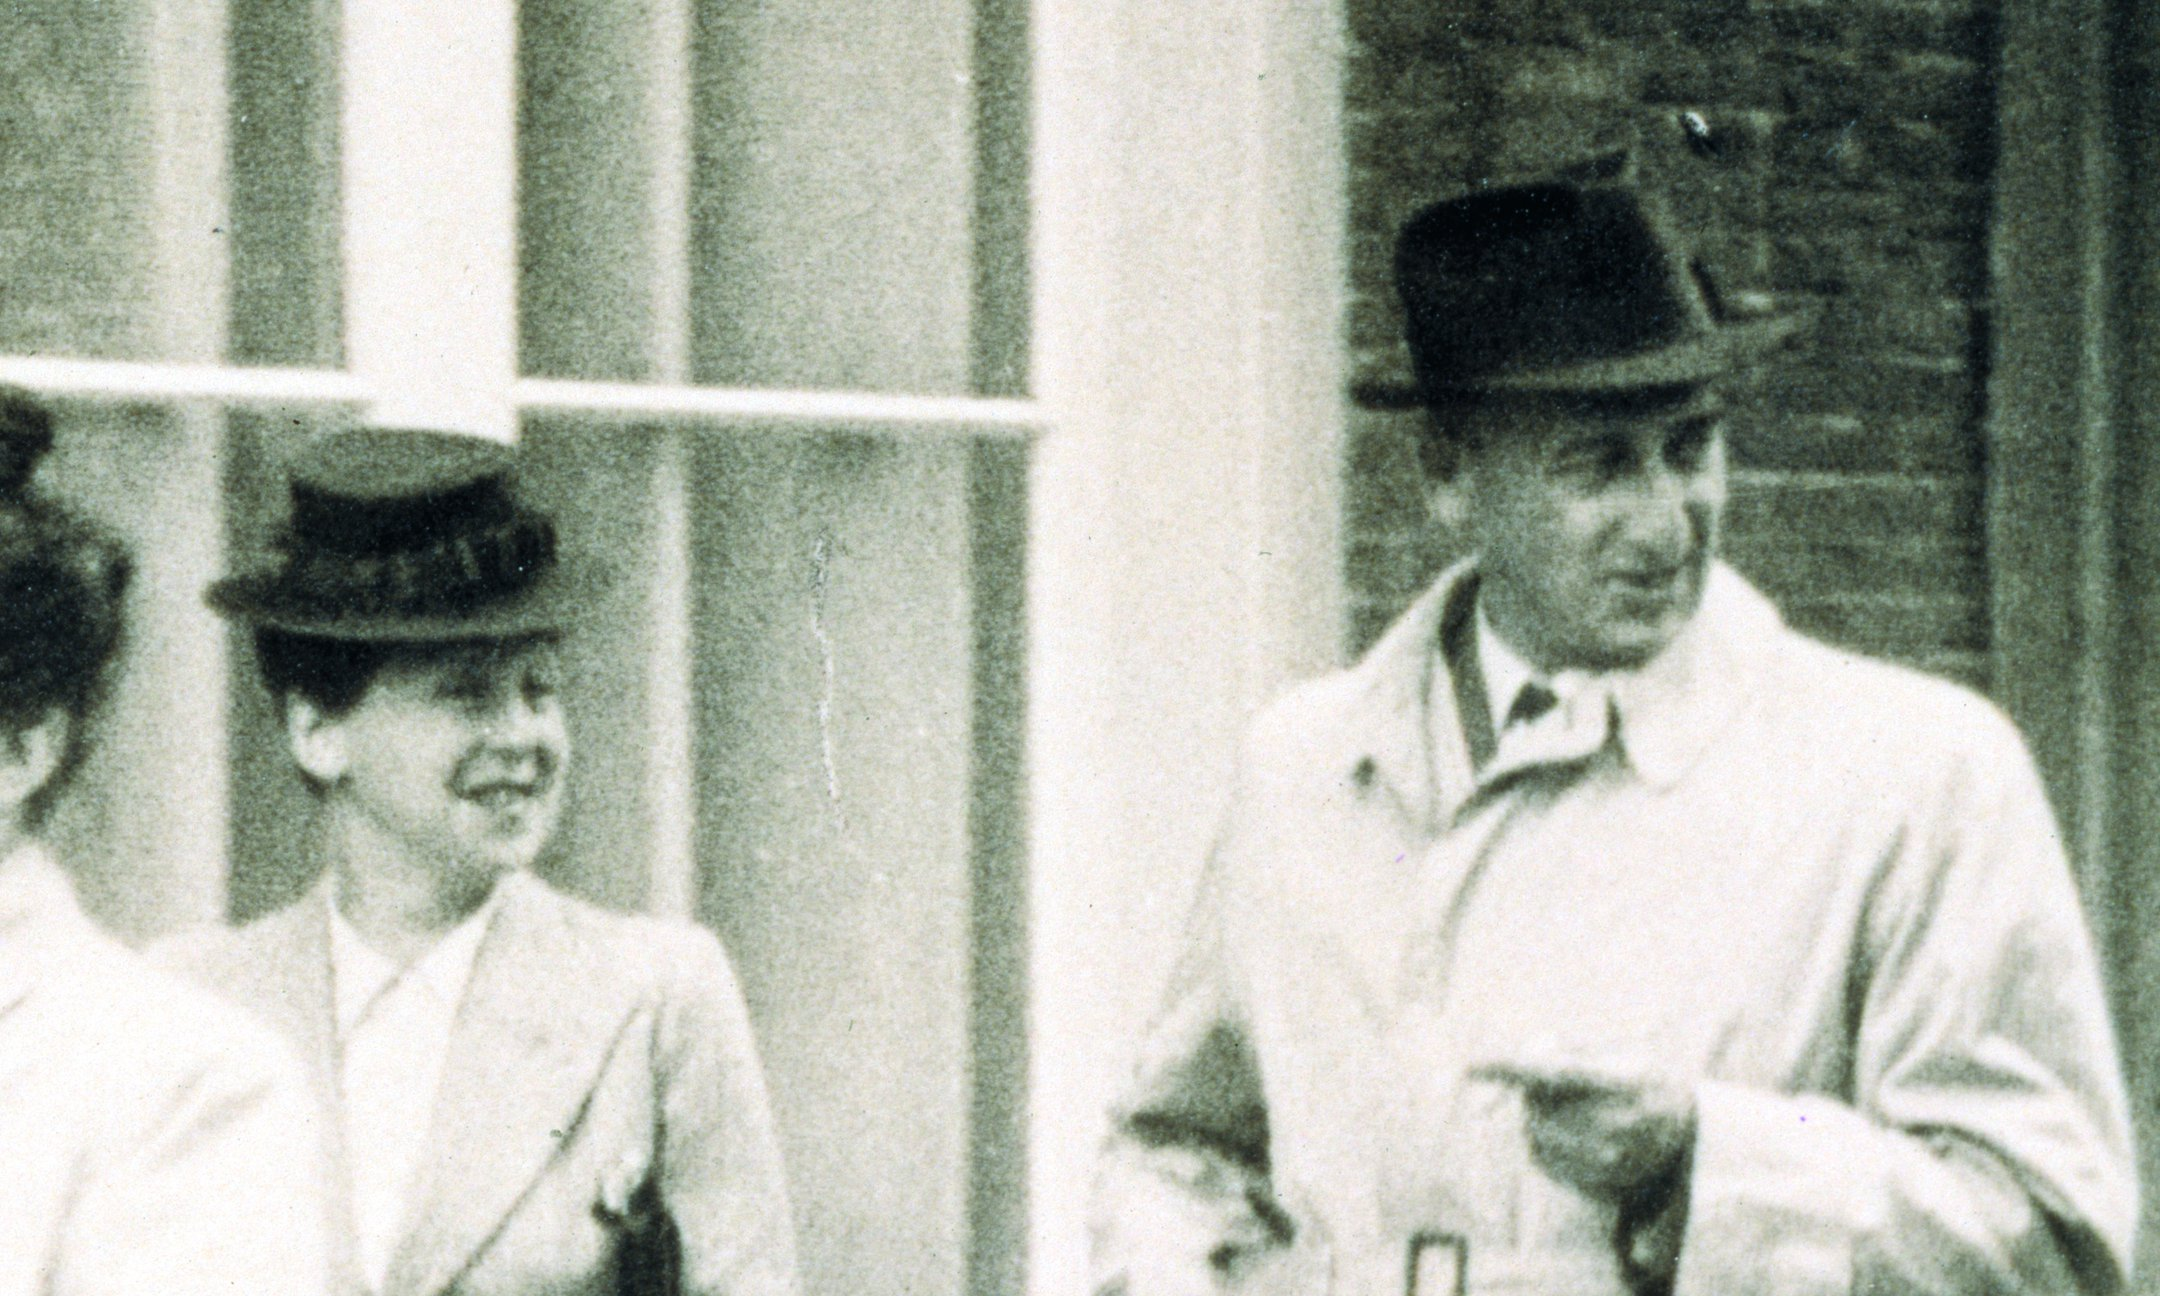 Hermann and Auguste van Pels (left) on their way to the wedding of Miep Santrouschitz and Jan Gies, 16 July 1941.